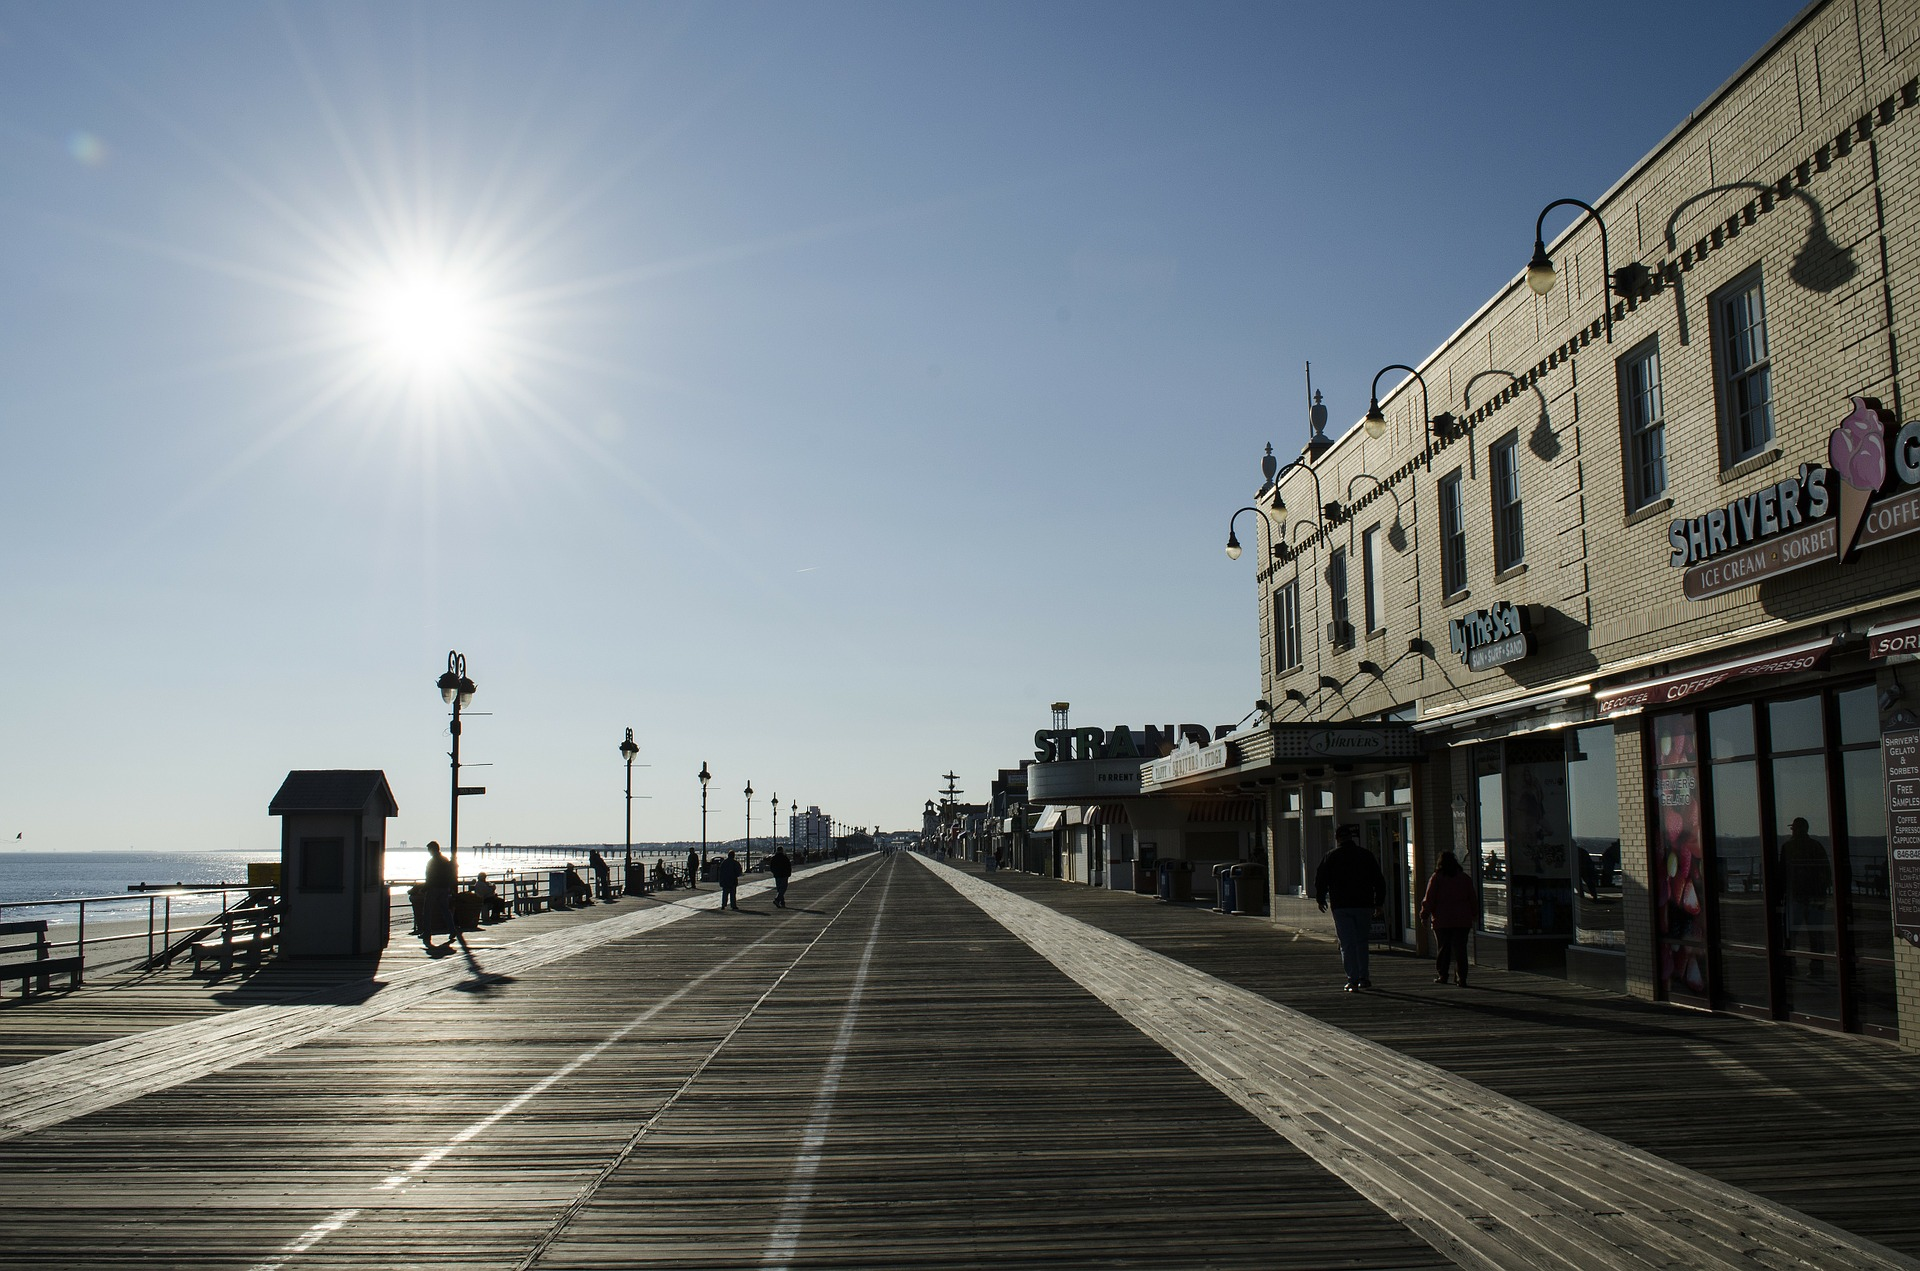 Jersey Shore - one of the most famous things in New Jersey